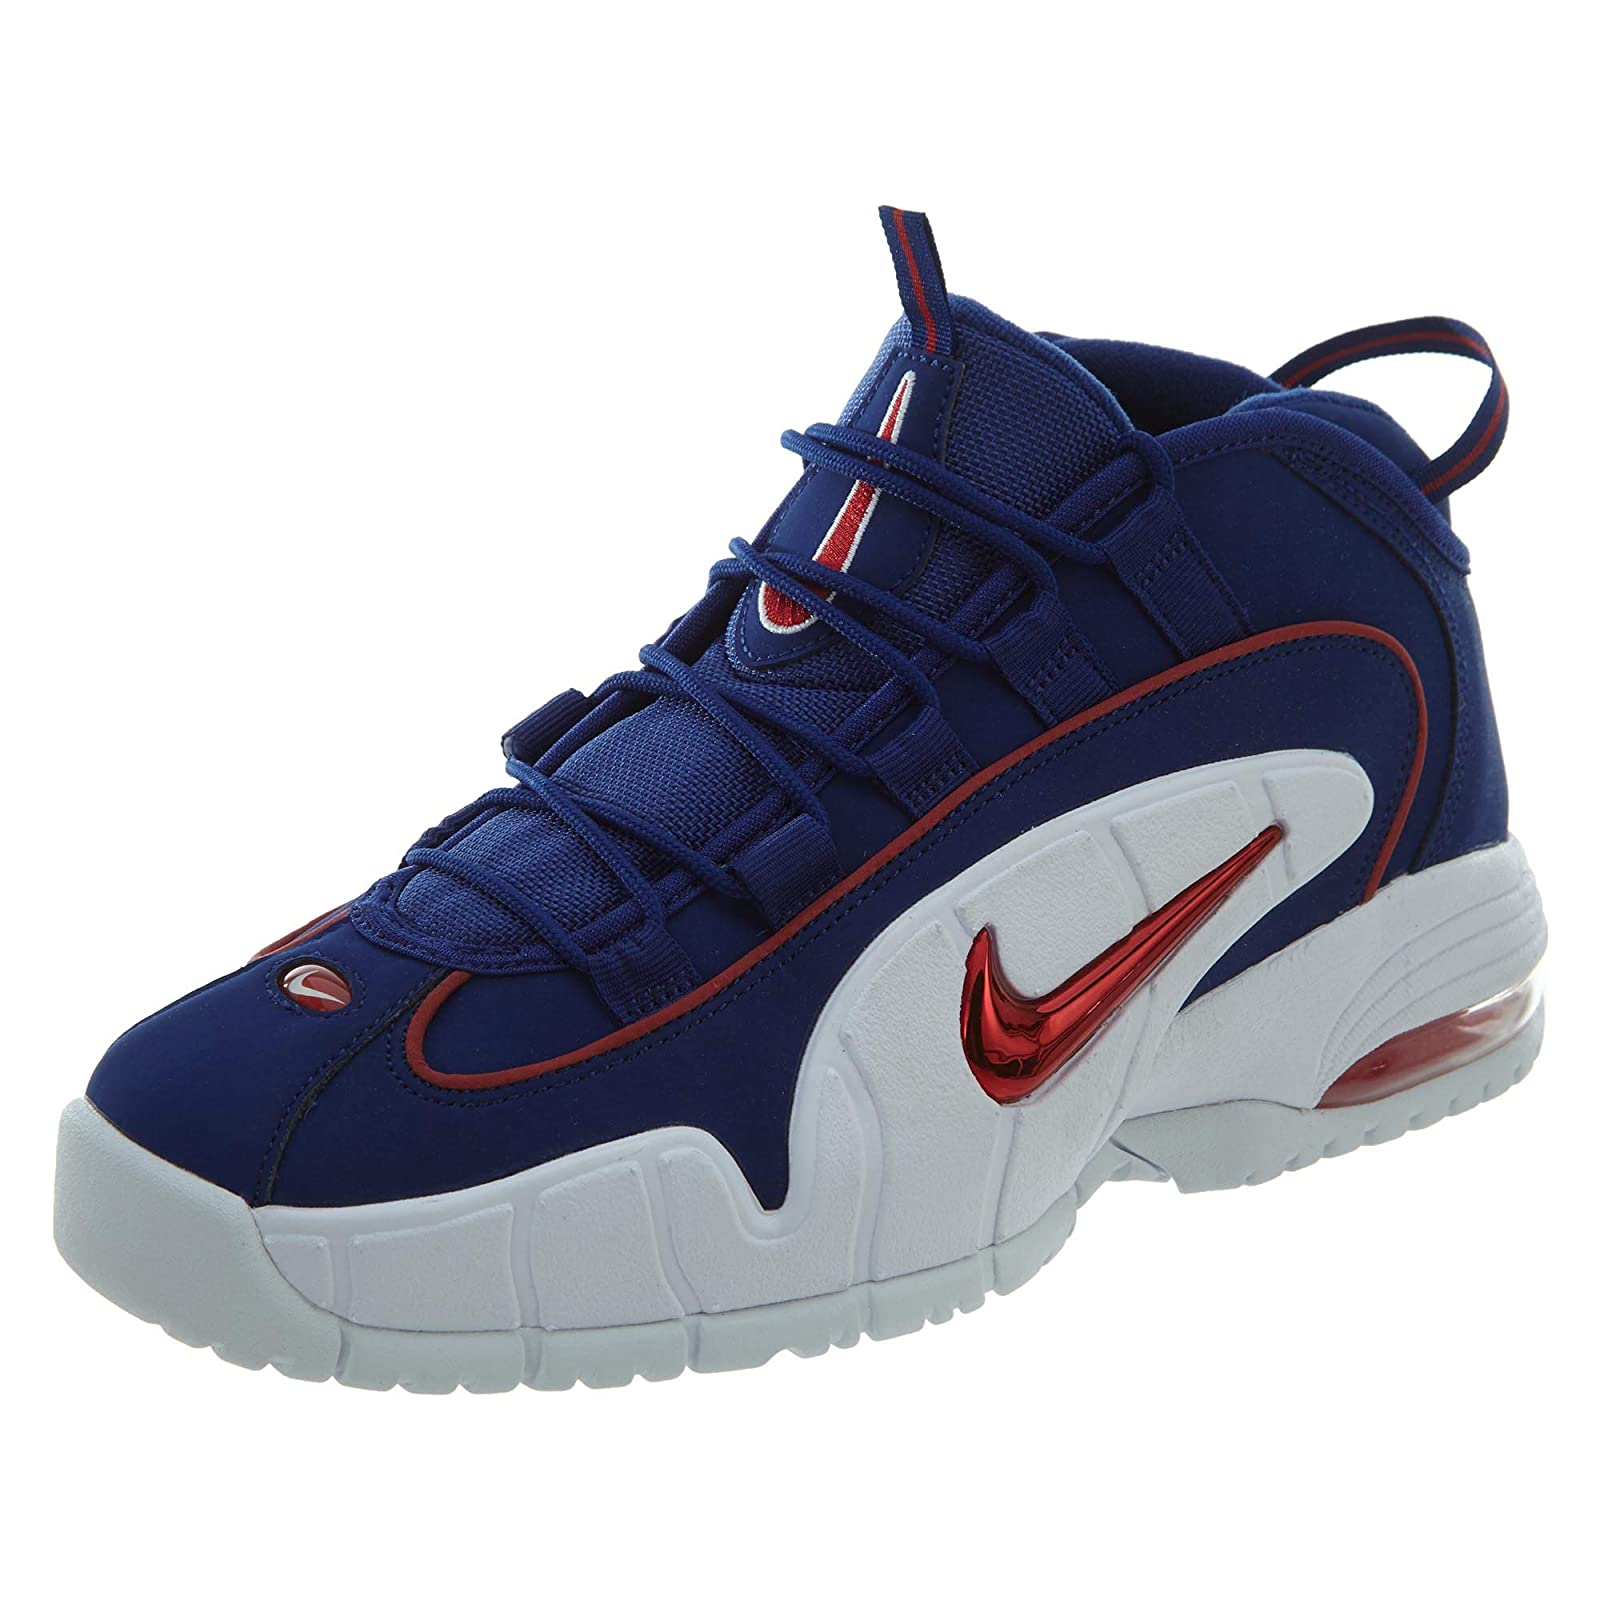 size 40 ed2cd 99b23 HQ Images of NIKE Air Max Penny Mens Style  685153-400 Size  8